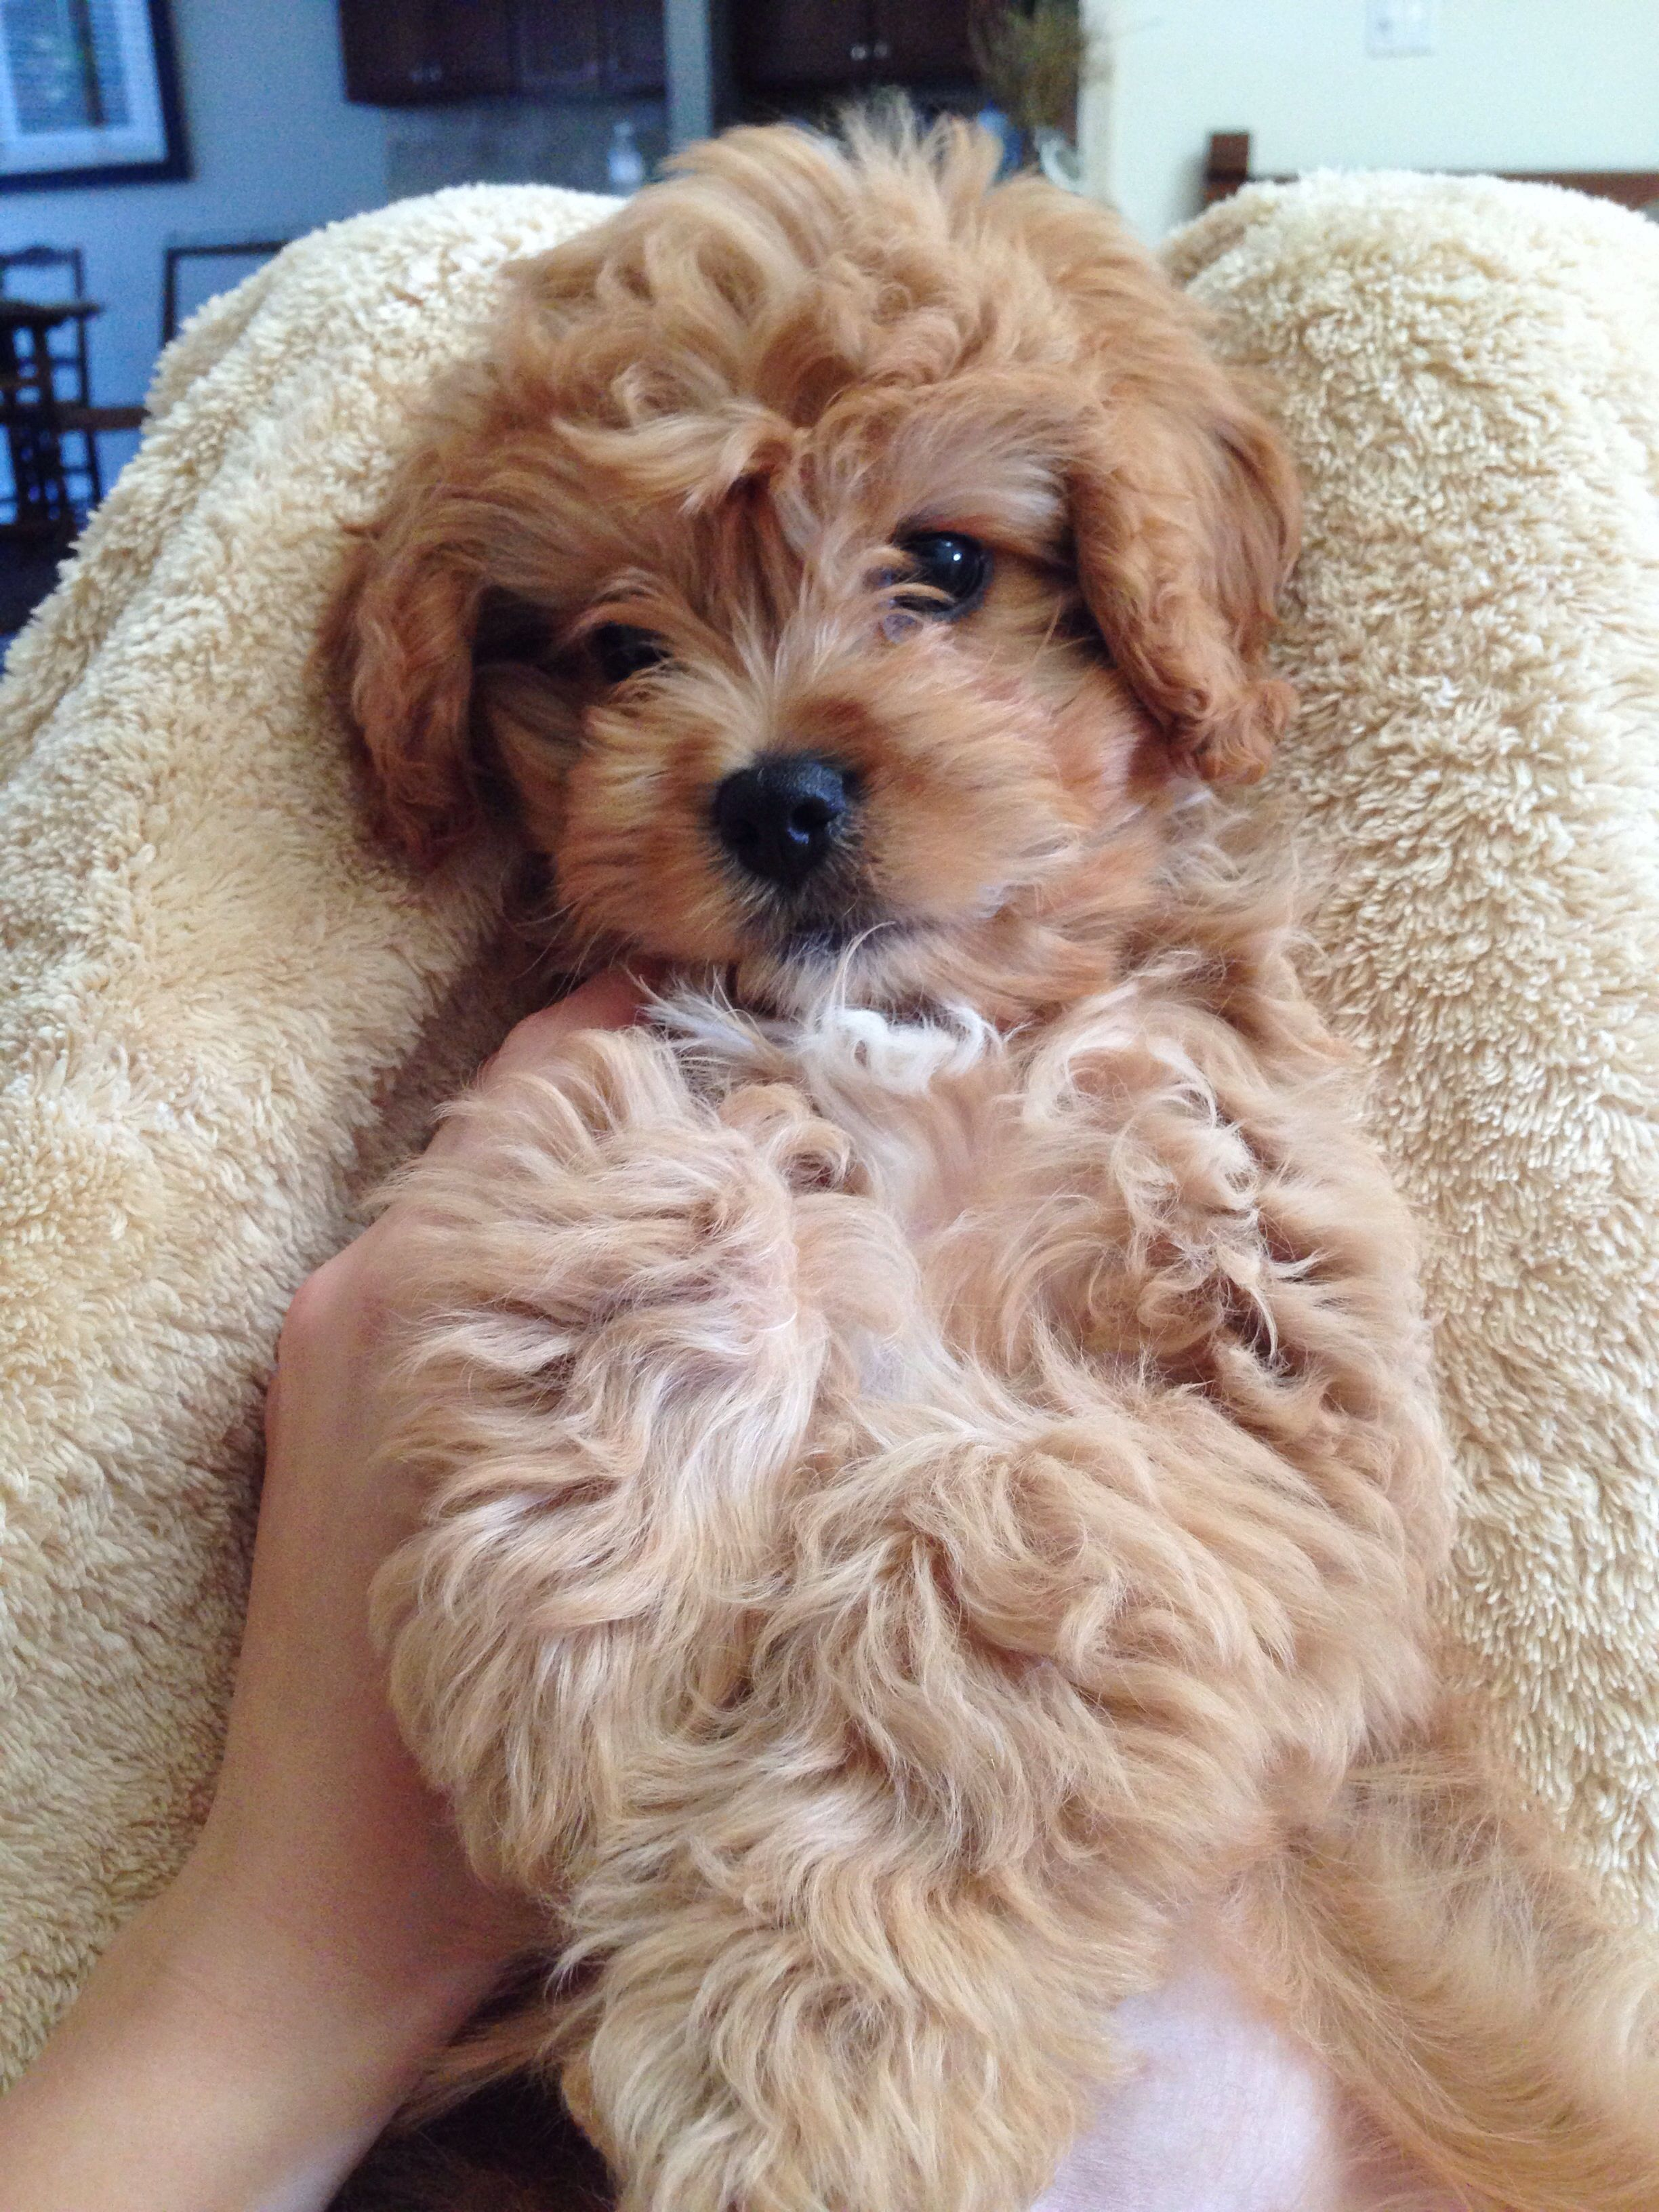 Pin By Kaylyn Cole On Little Things Cute Baby Animals Puppies Best Dog Breeds